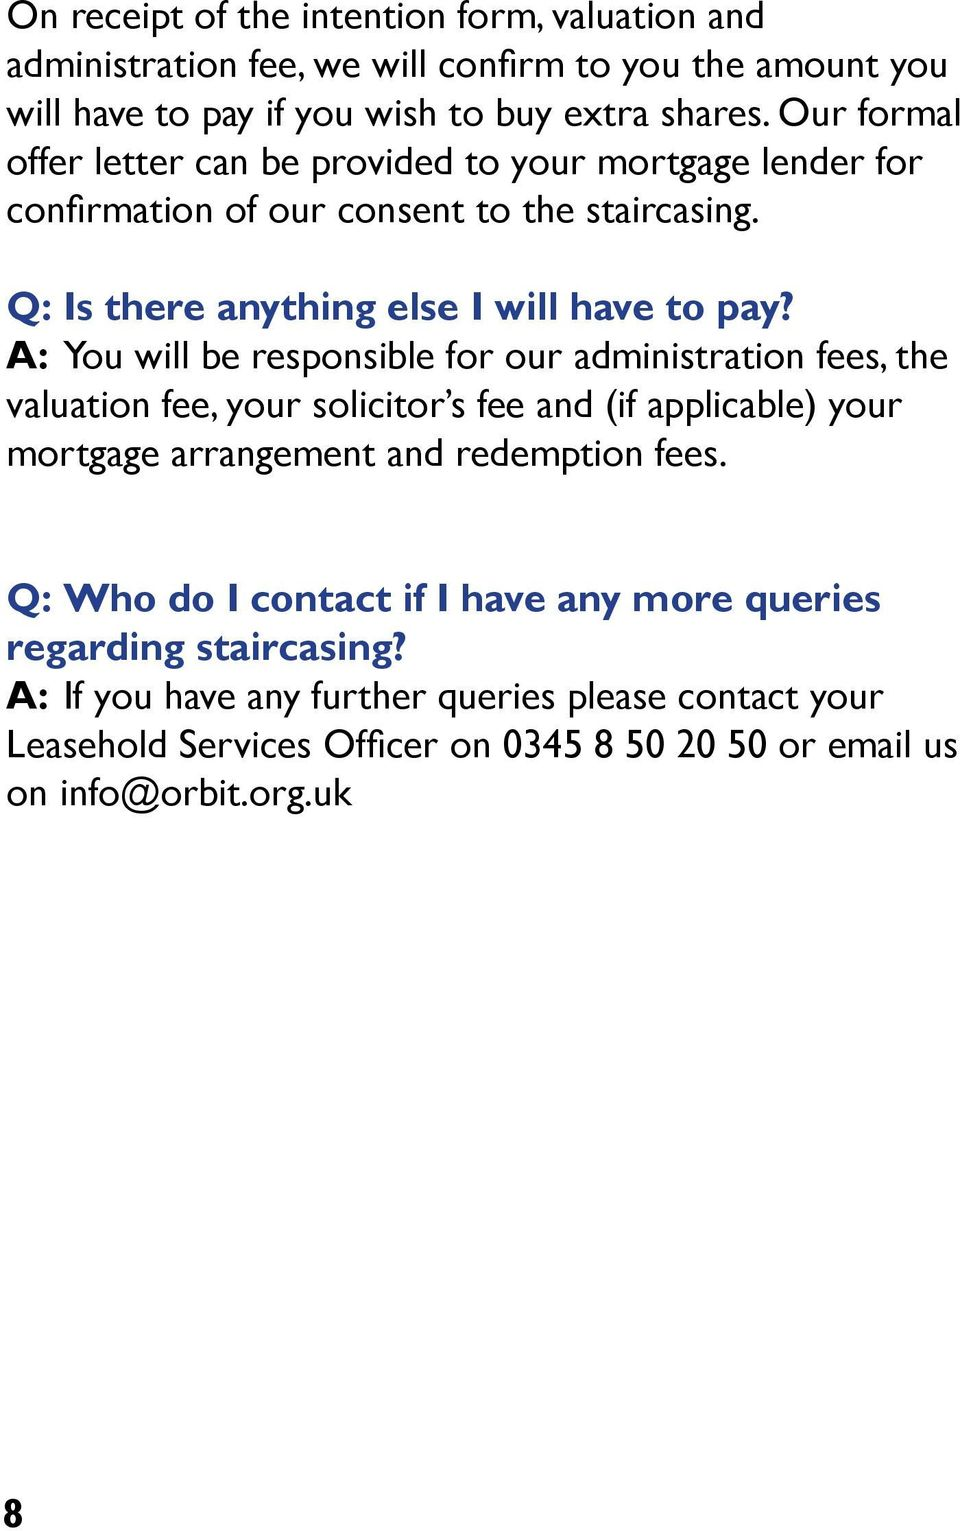 A: You will be responsible for our administration fees, the valuation fee, your solicitor s fee and (if applicable) your mortgage arrangement and redemption fees.